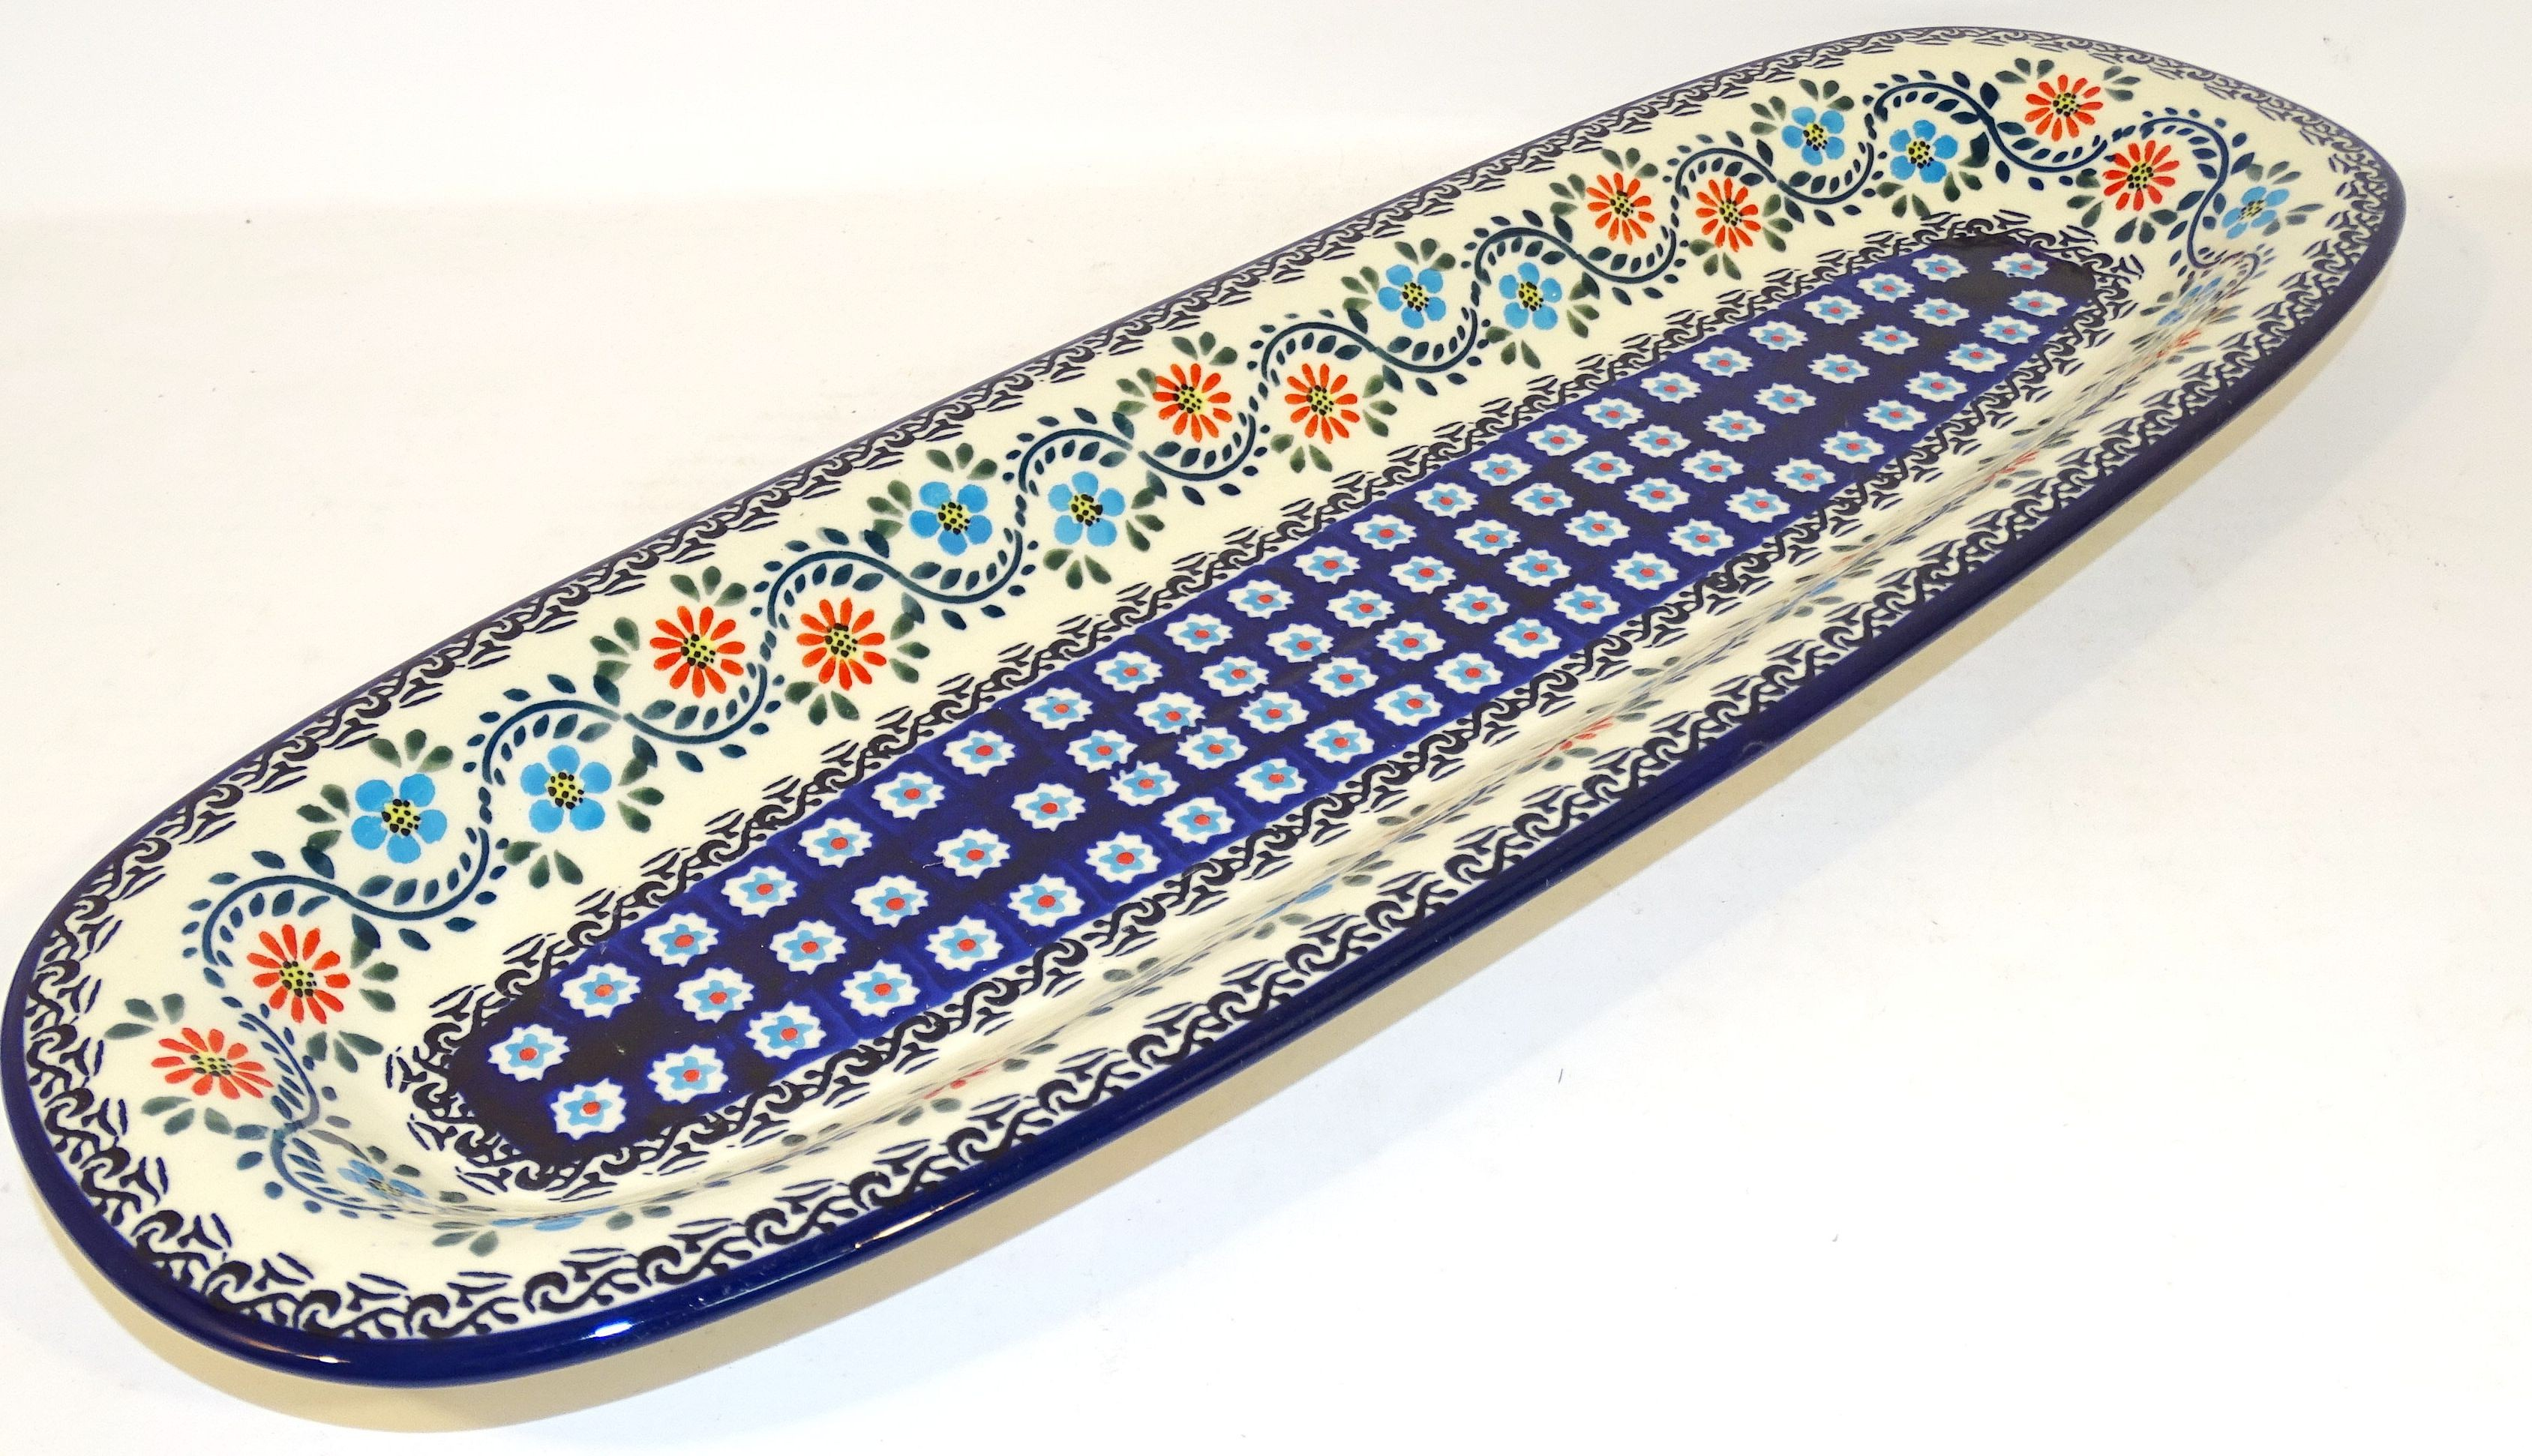 "Pottery Avenue 18"" HERITAGE HOME Baguette Serving Platters 